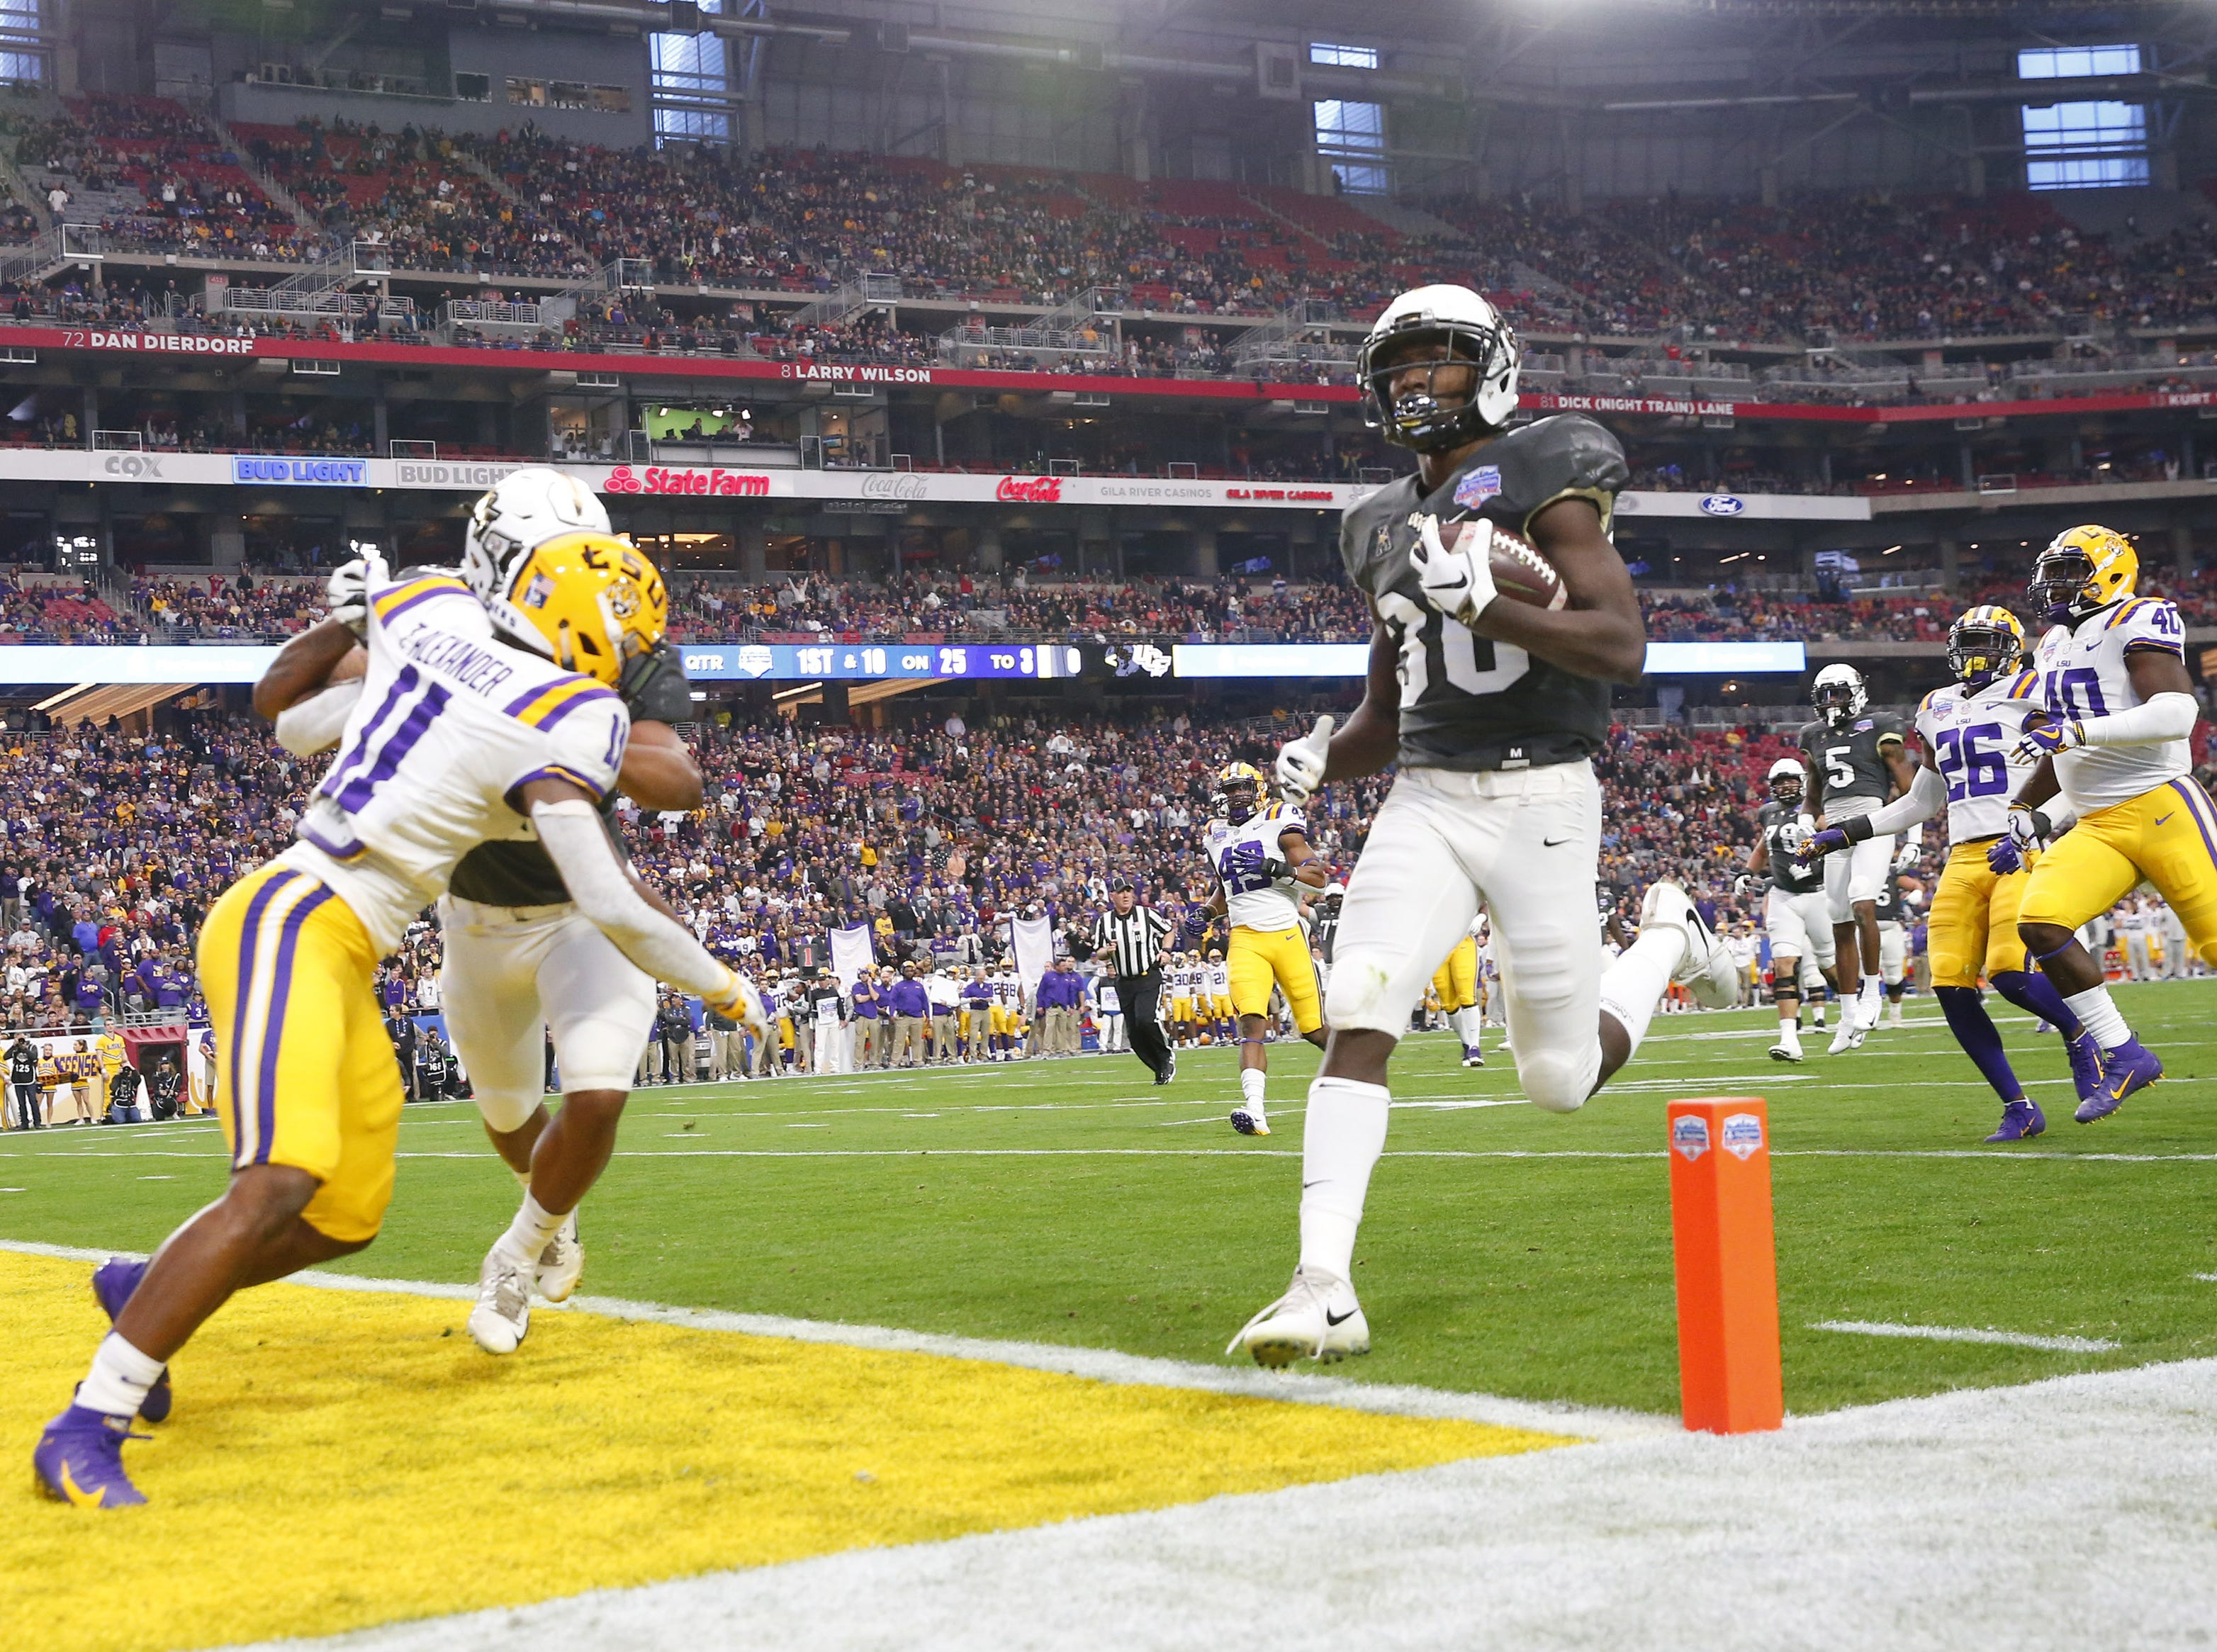 LSU wide receiver Michael Ostrom (30) runs in for a touchdown against LSU during the Fiesta Bowl in Glendale January 1, 2019.